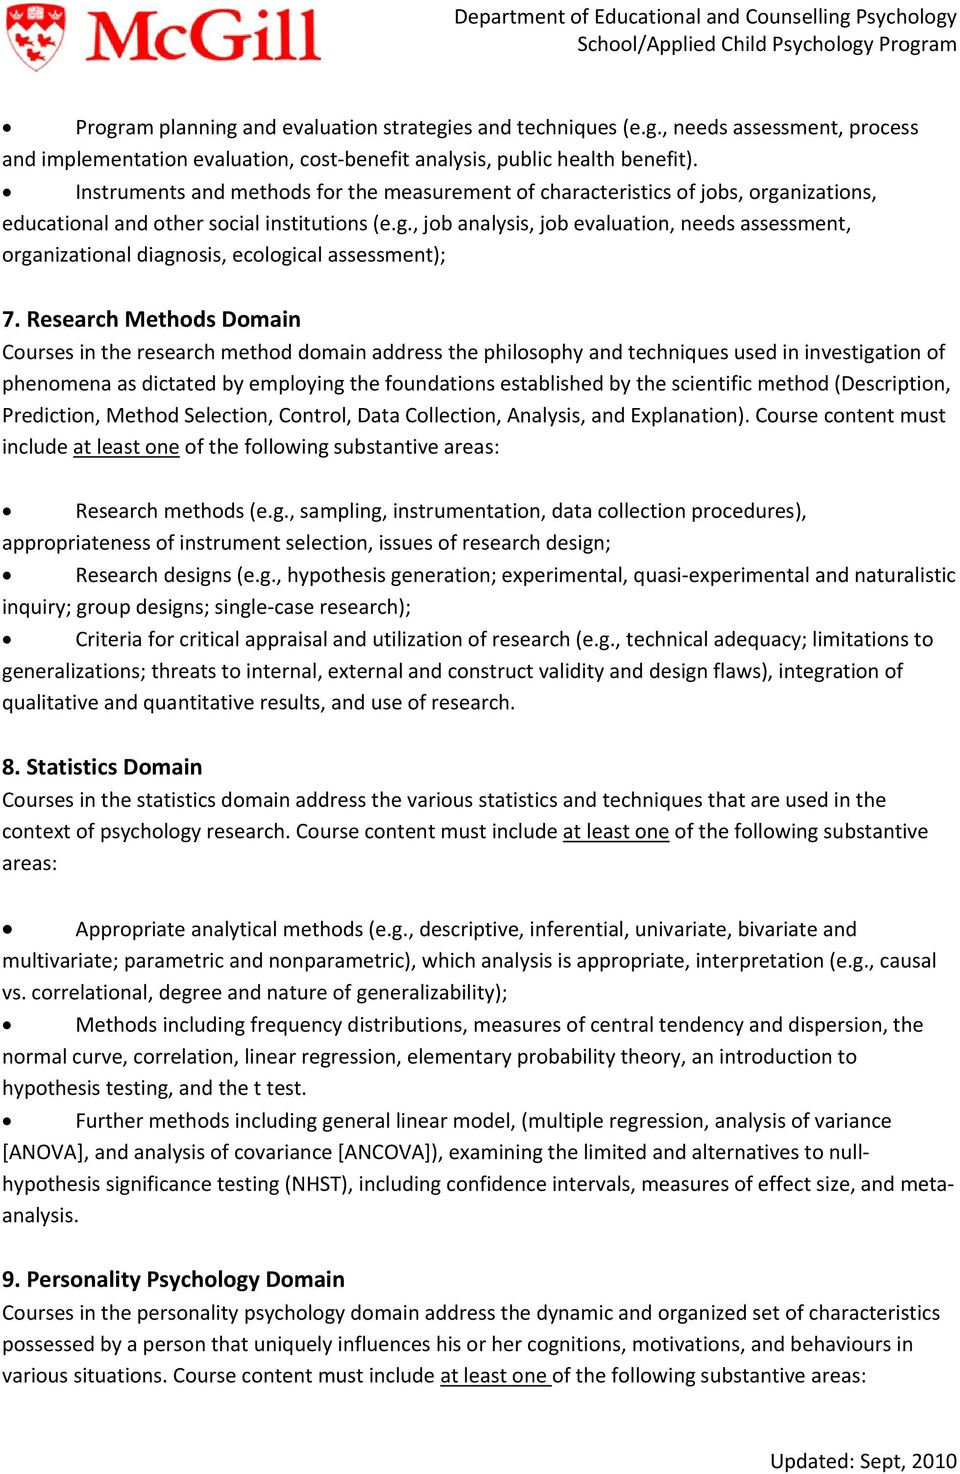 Research Methods Domain Courses in the research method domain address the philosophy and techniques used in investigation of phenomena as dictated by employing the foundations established by the